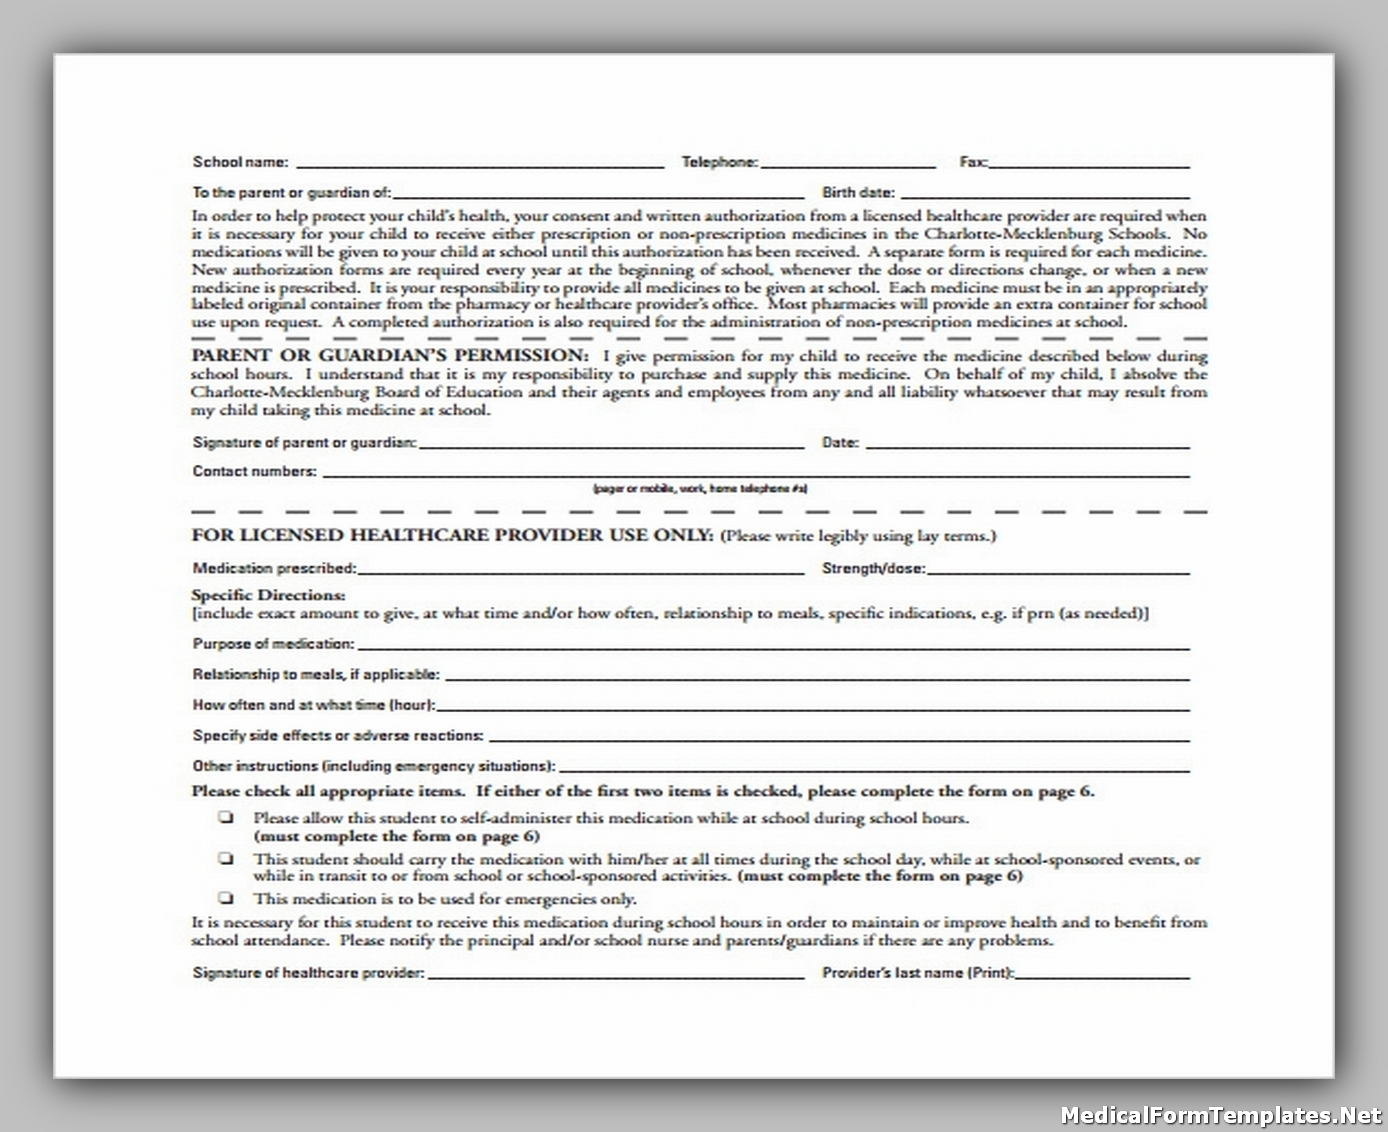 School Medical Authorization Form to Download